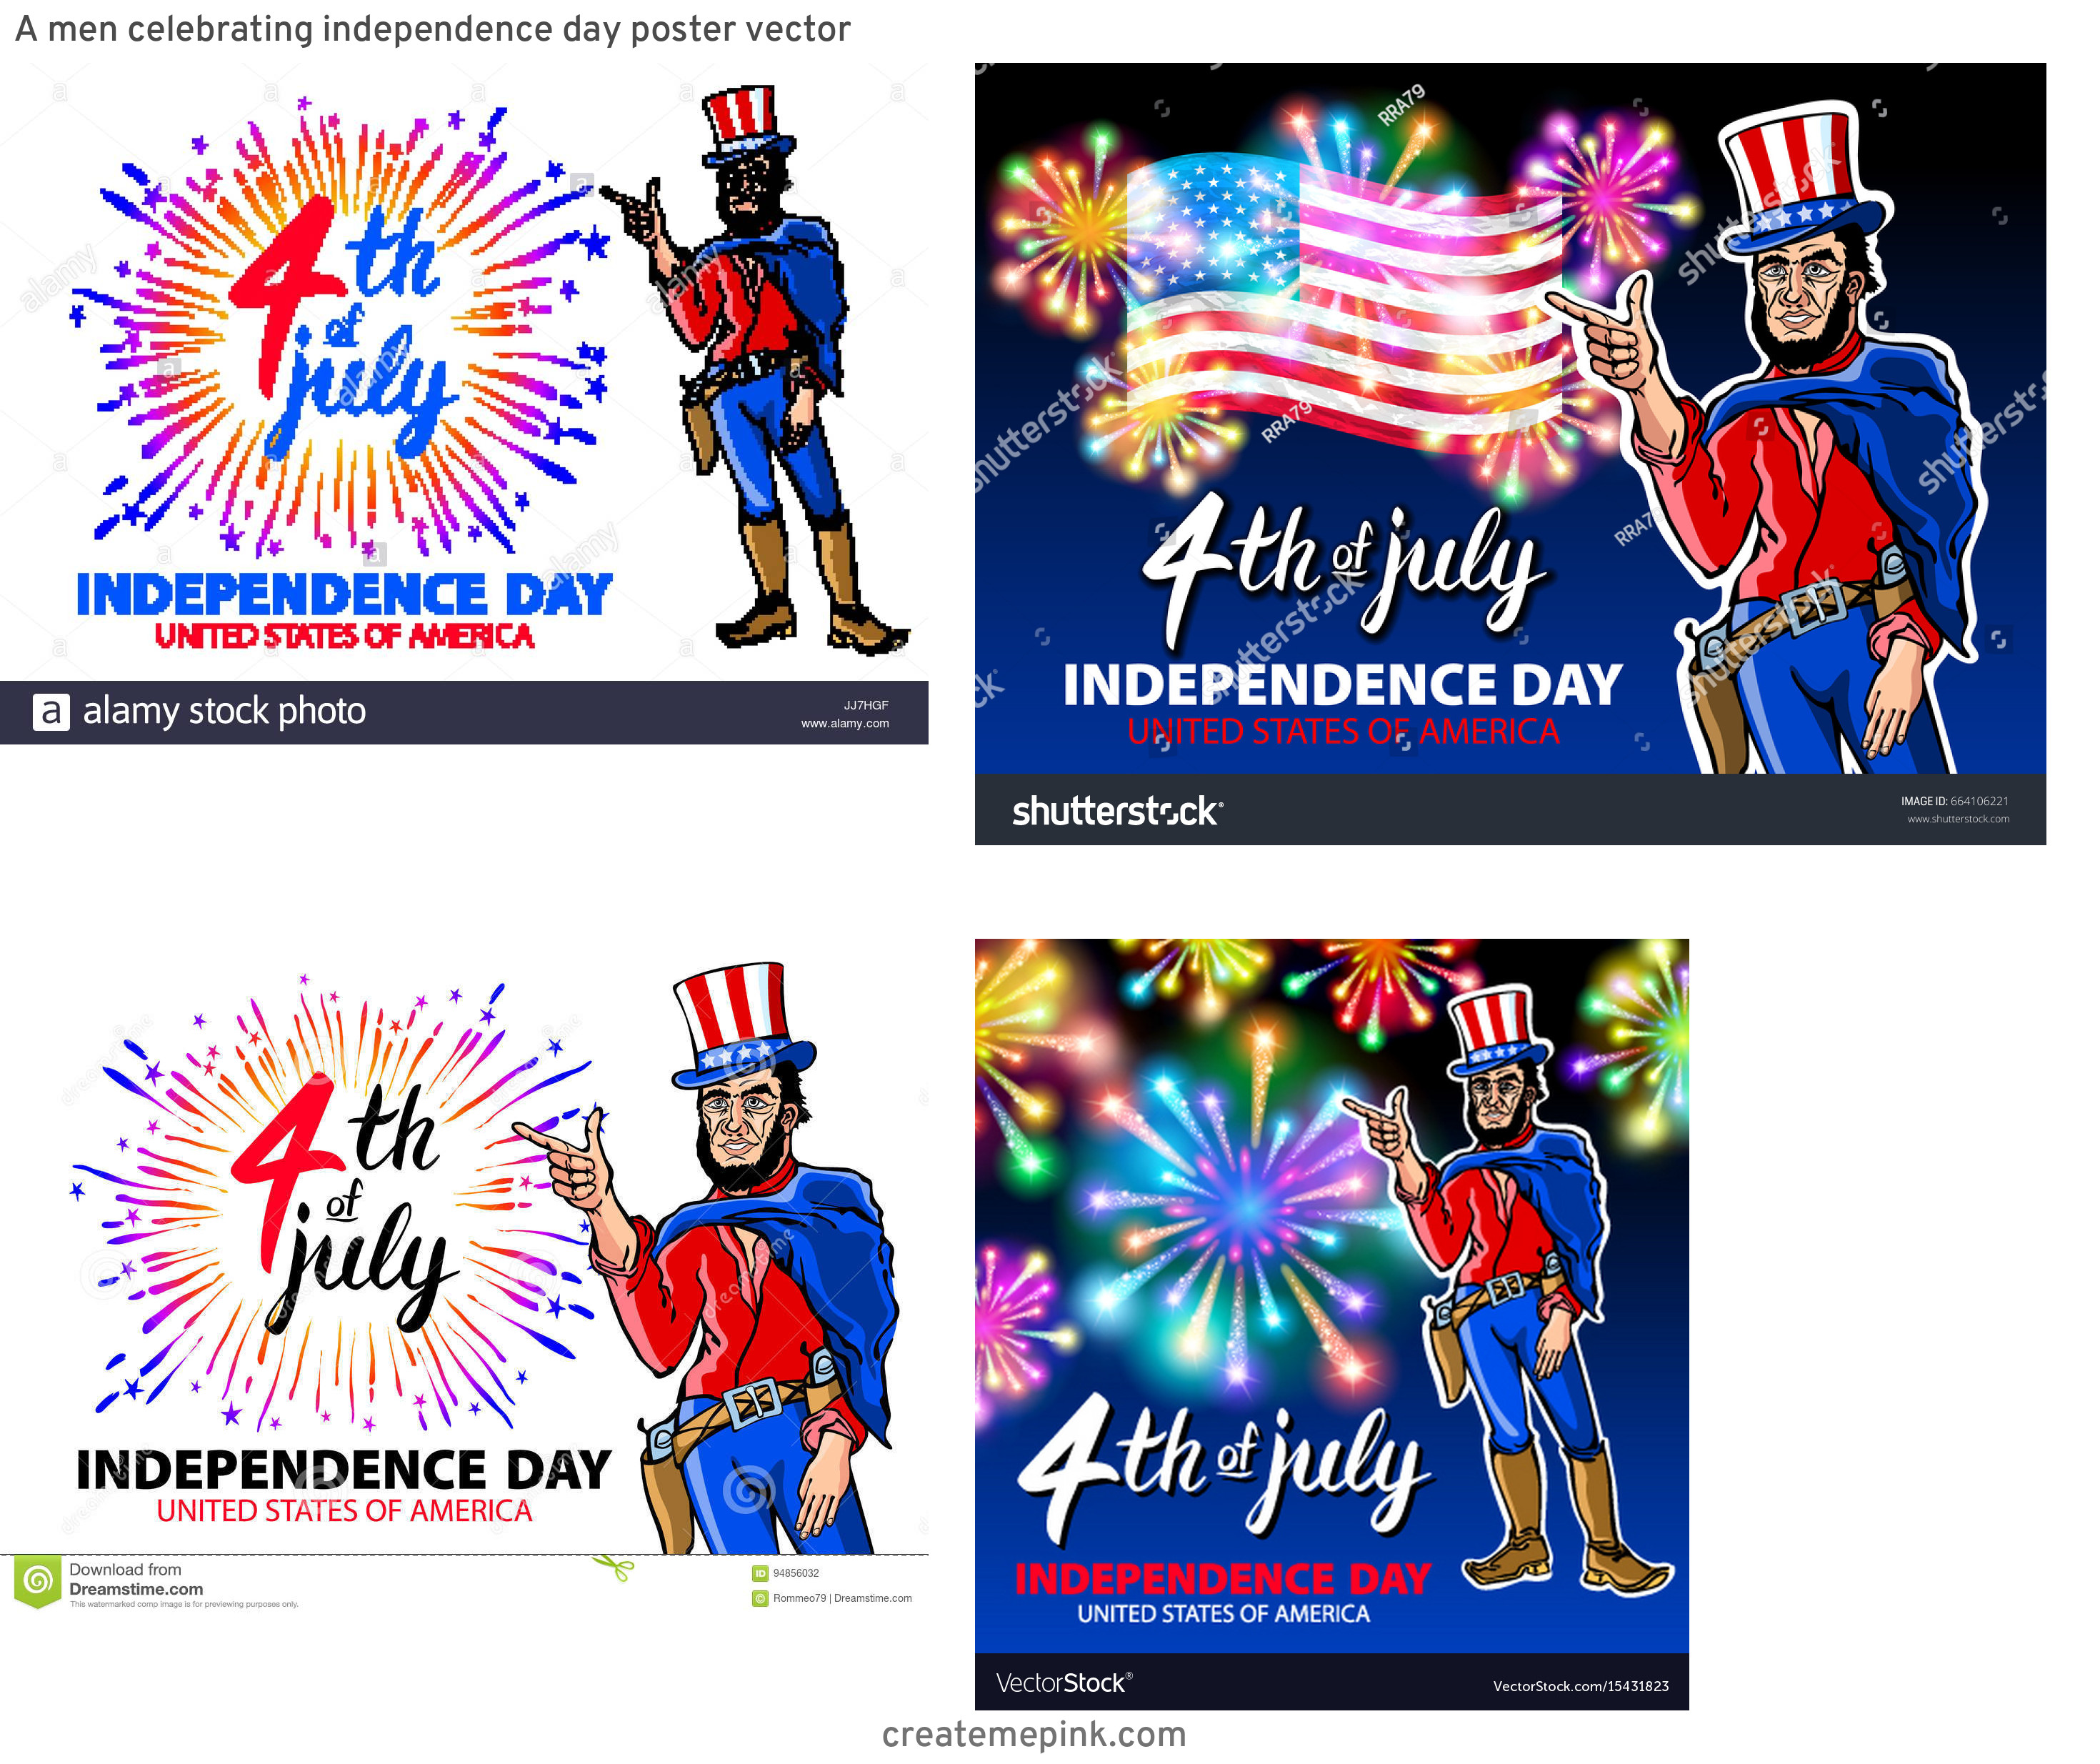 4th Of July Vectors For Men's: A Men Celebrating Independence Day Poster Vector